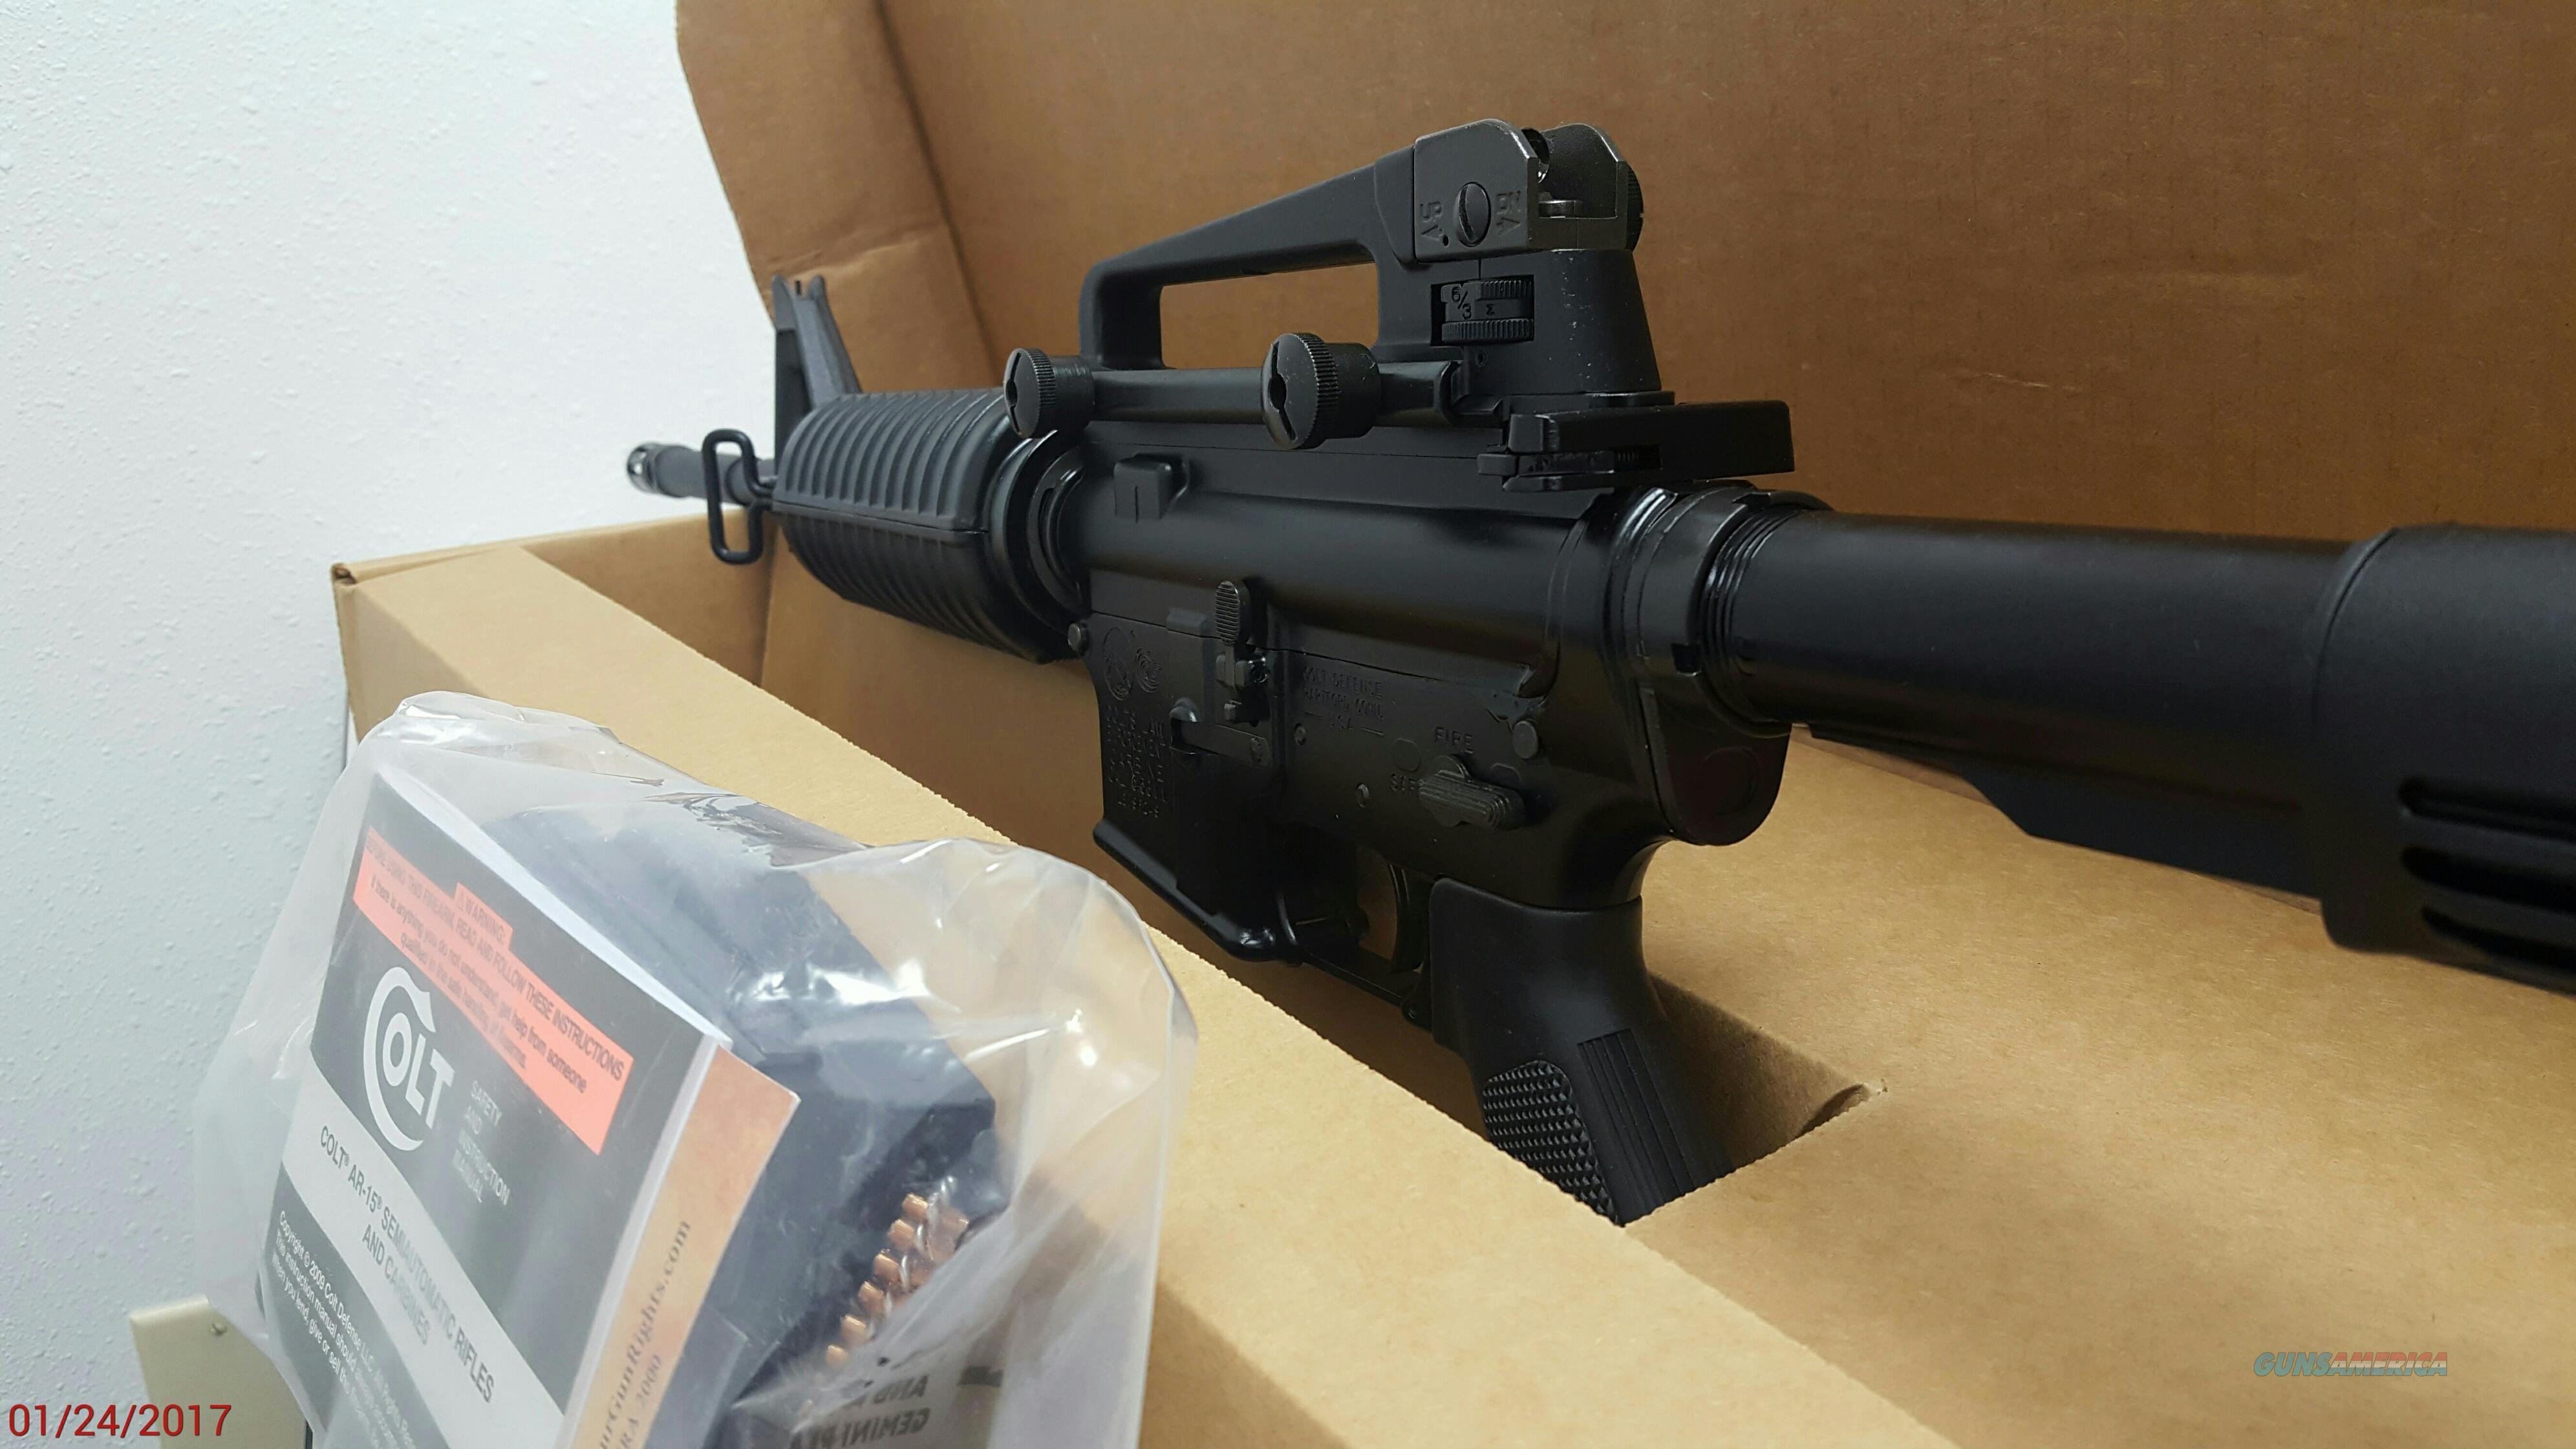 NIB Colt LE 6920 Law Enforcement Carbine - AR 15 .223/5.56 - Restricted Rollmark  Guns > Rifles > Colt Military/Tactical Rifles